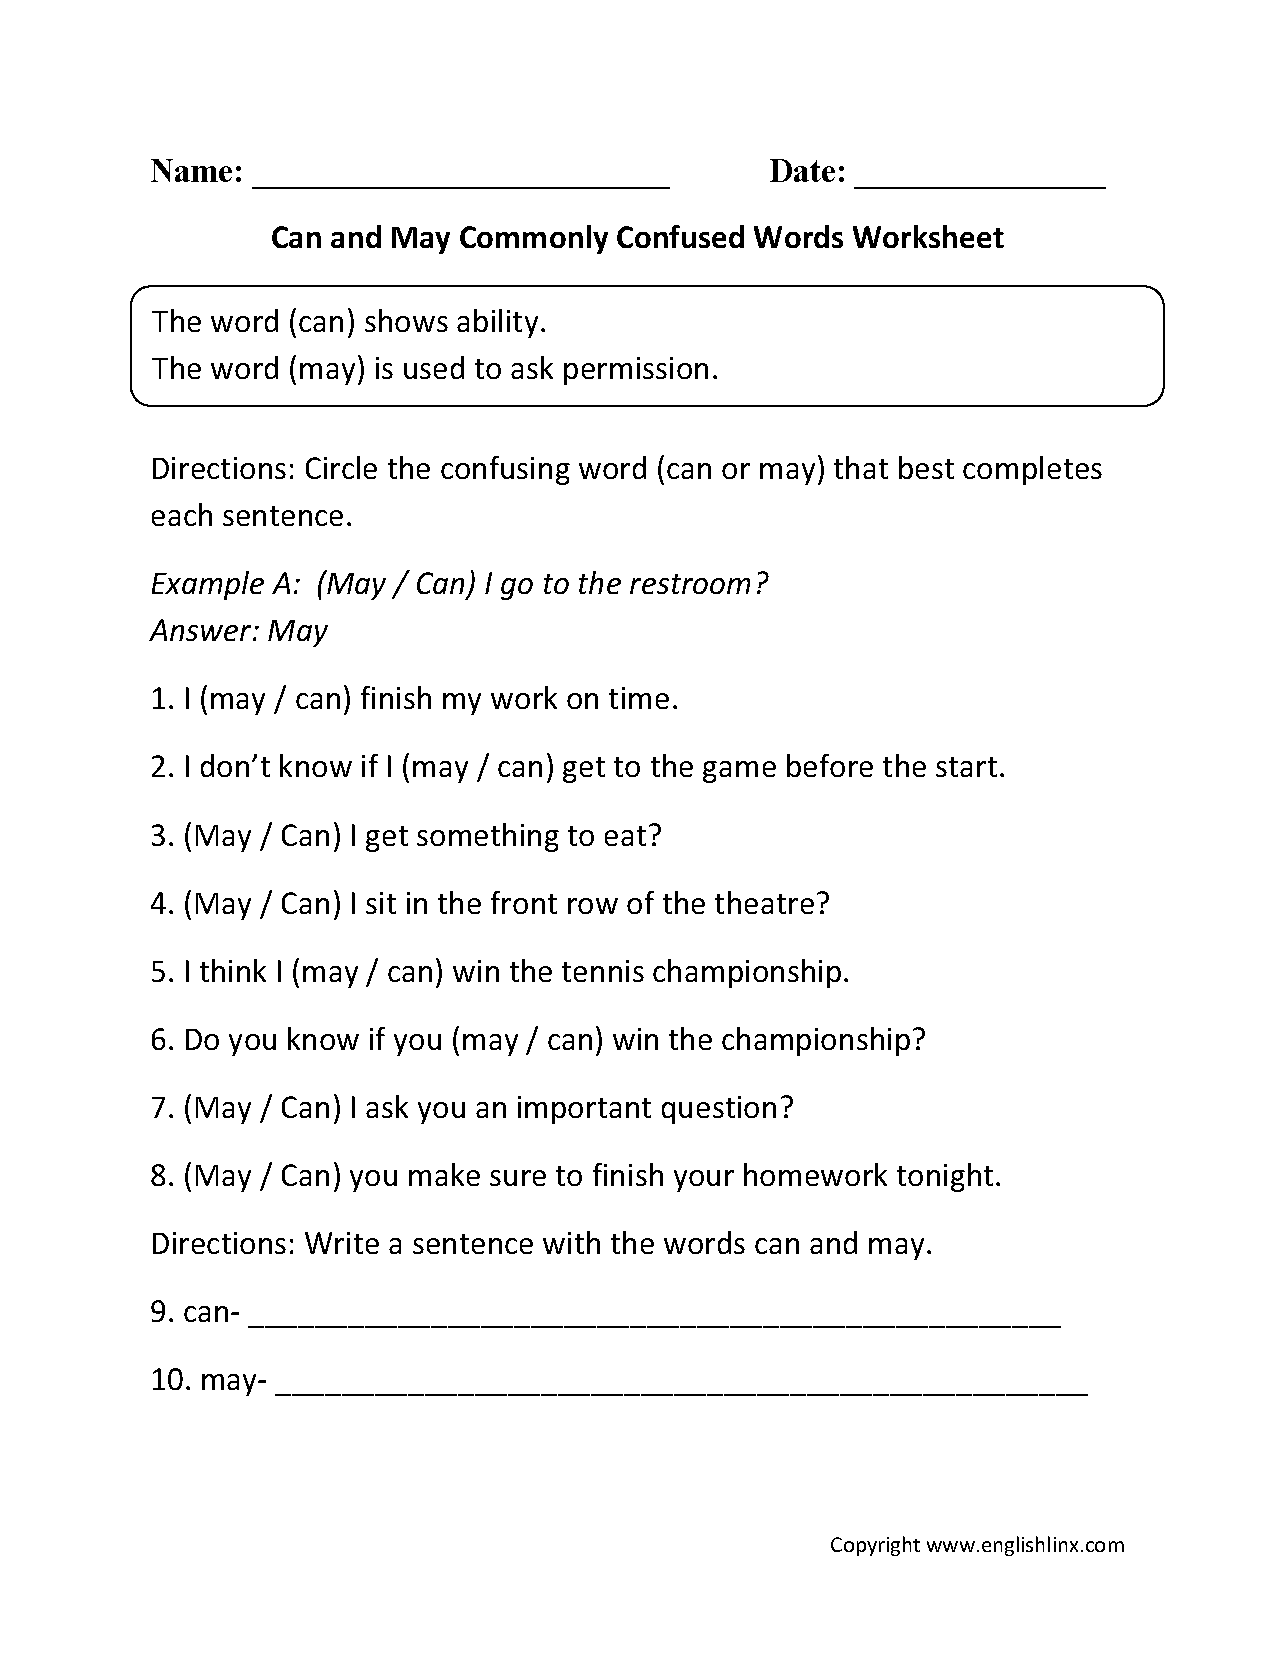 ... Words Worksheets | Can and May Commonly Confused Words Worksheets